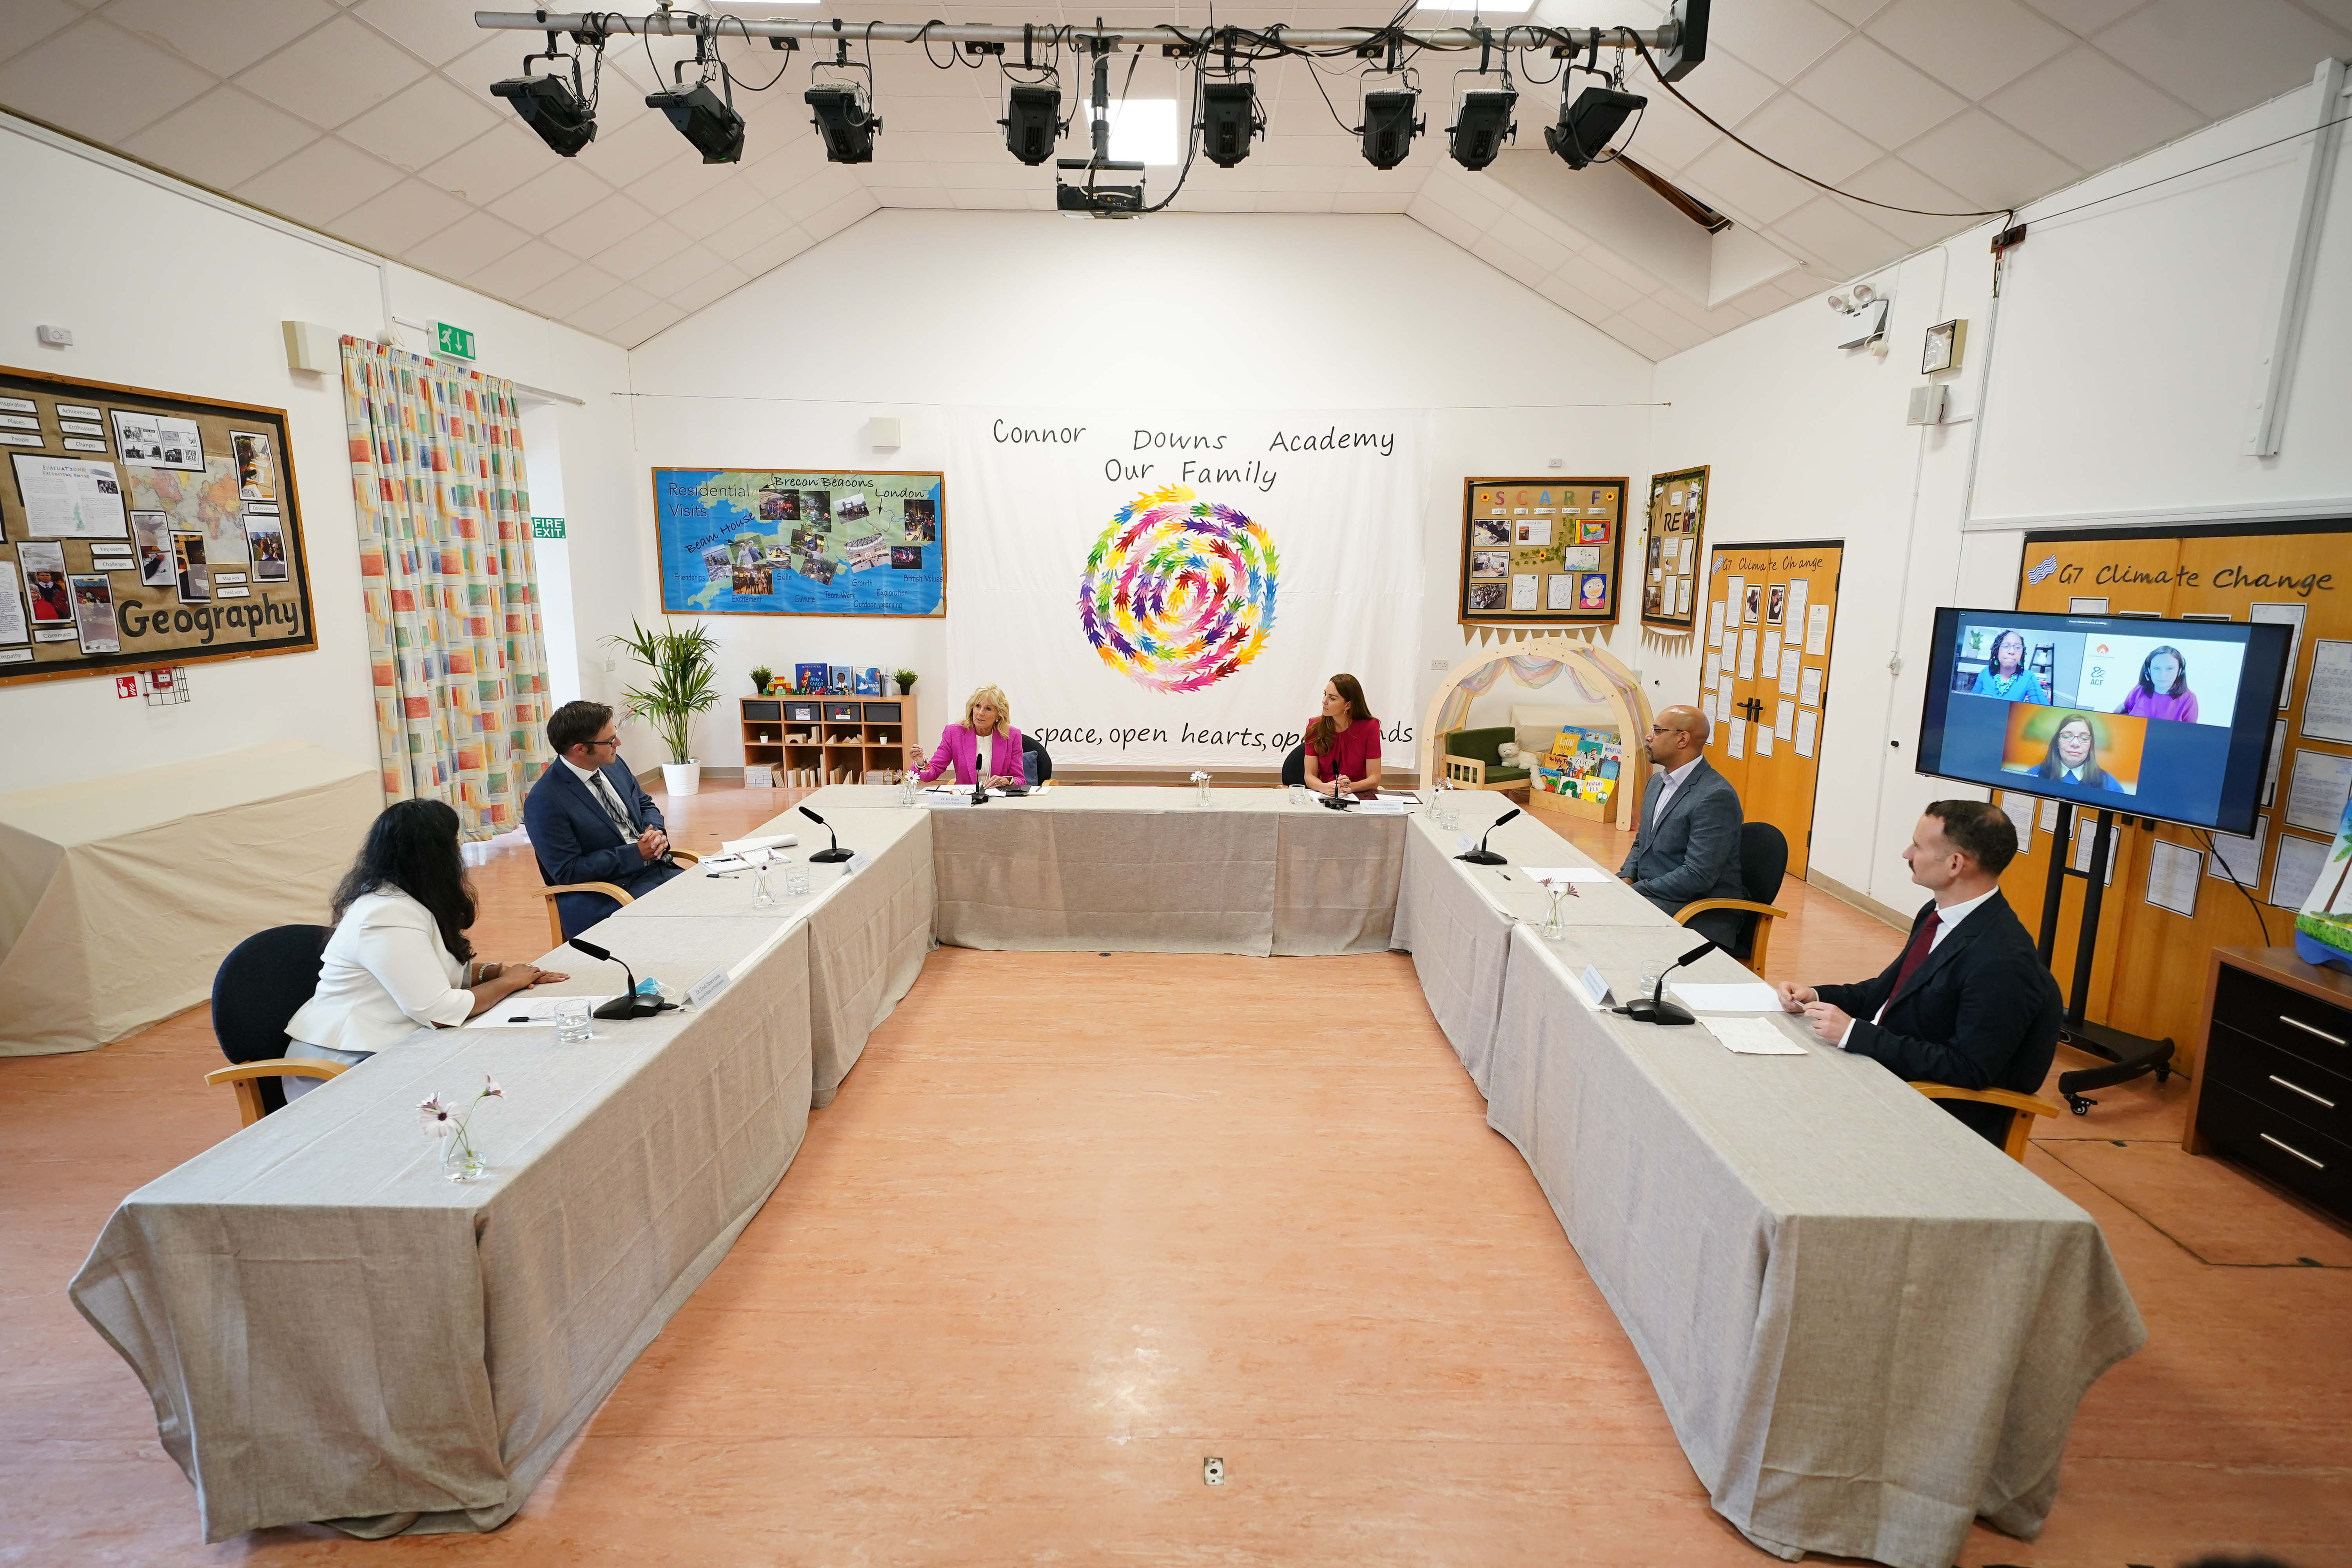 The Duchess of Cambridge and Dr Biden participate in an education round-table.